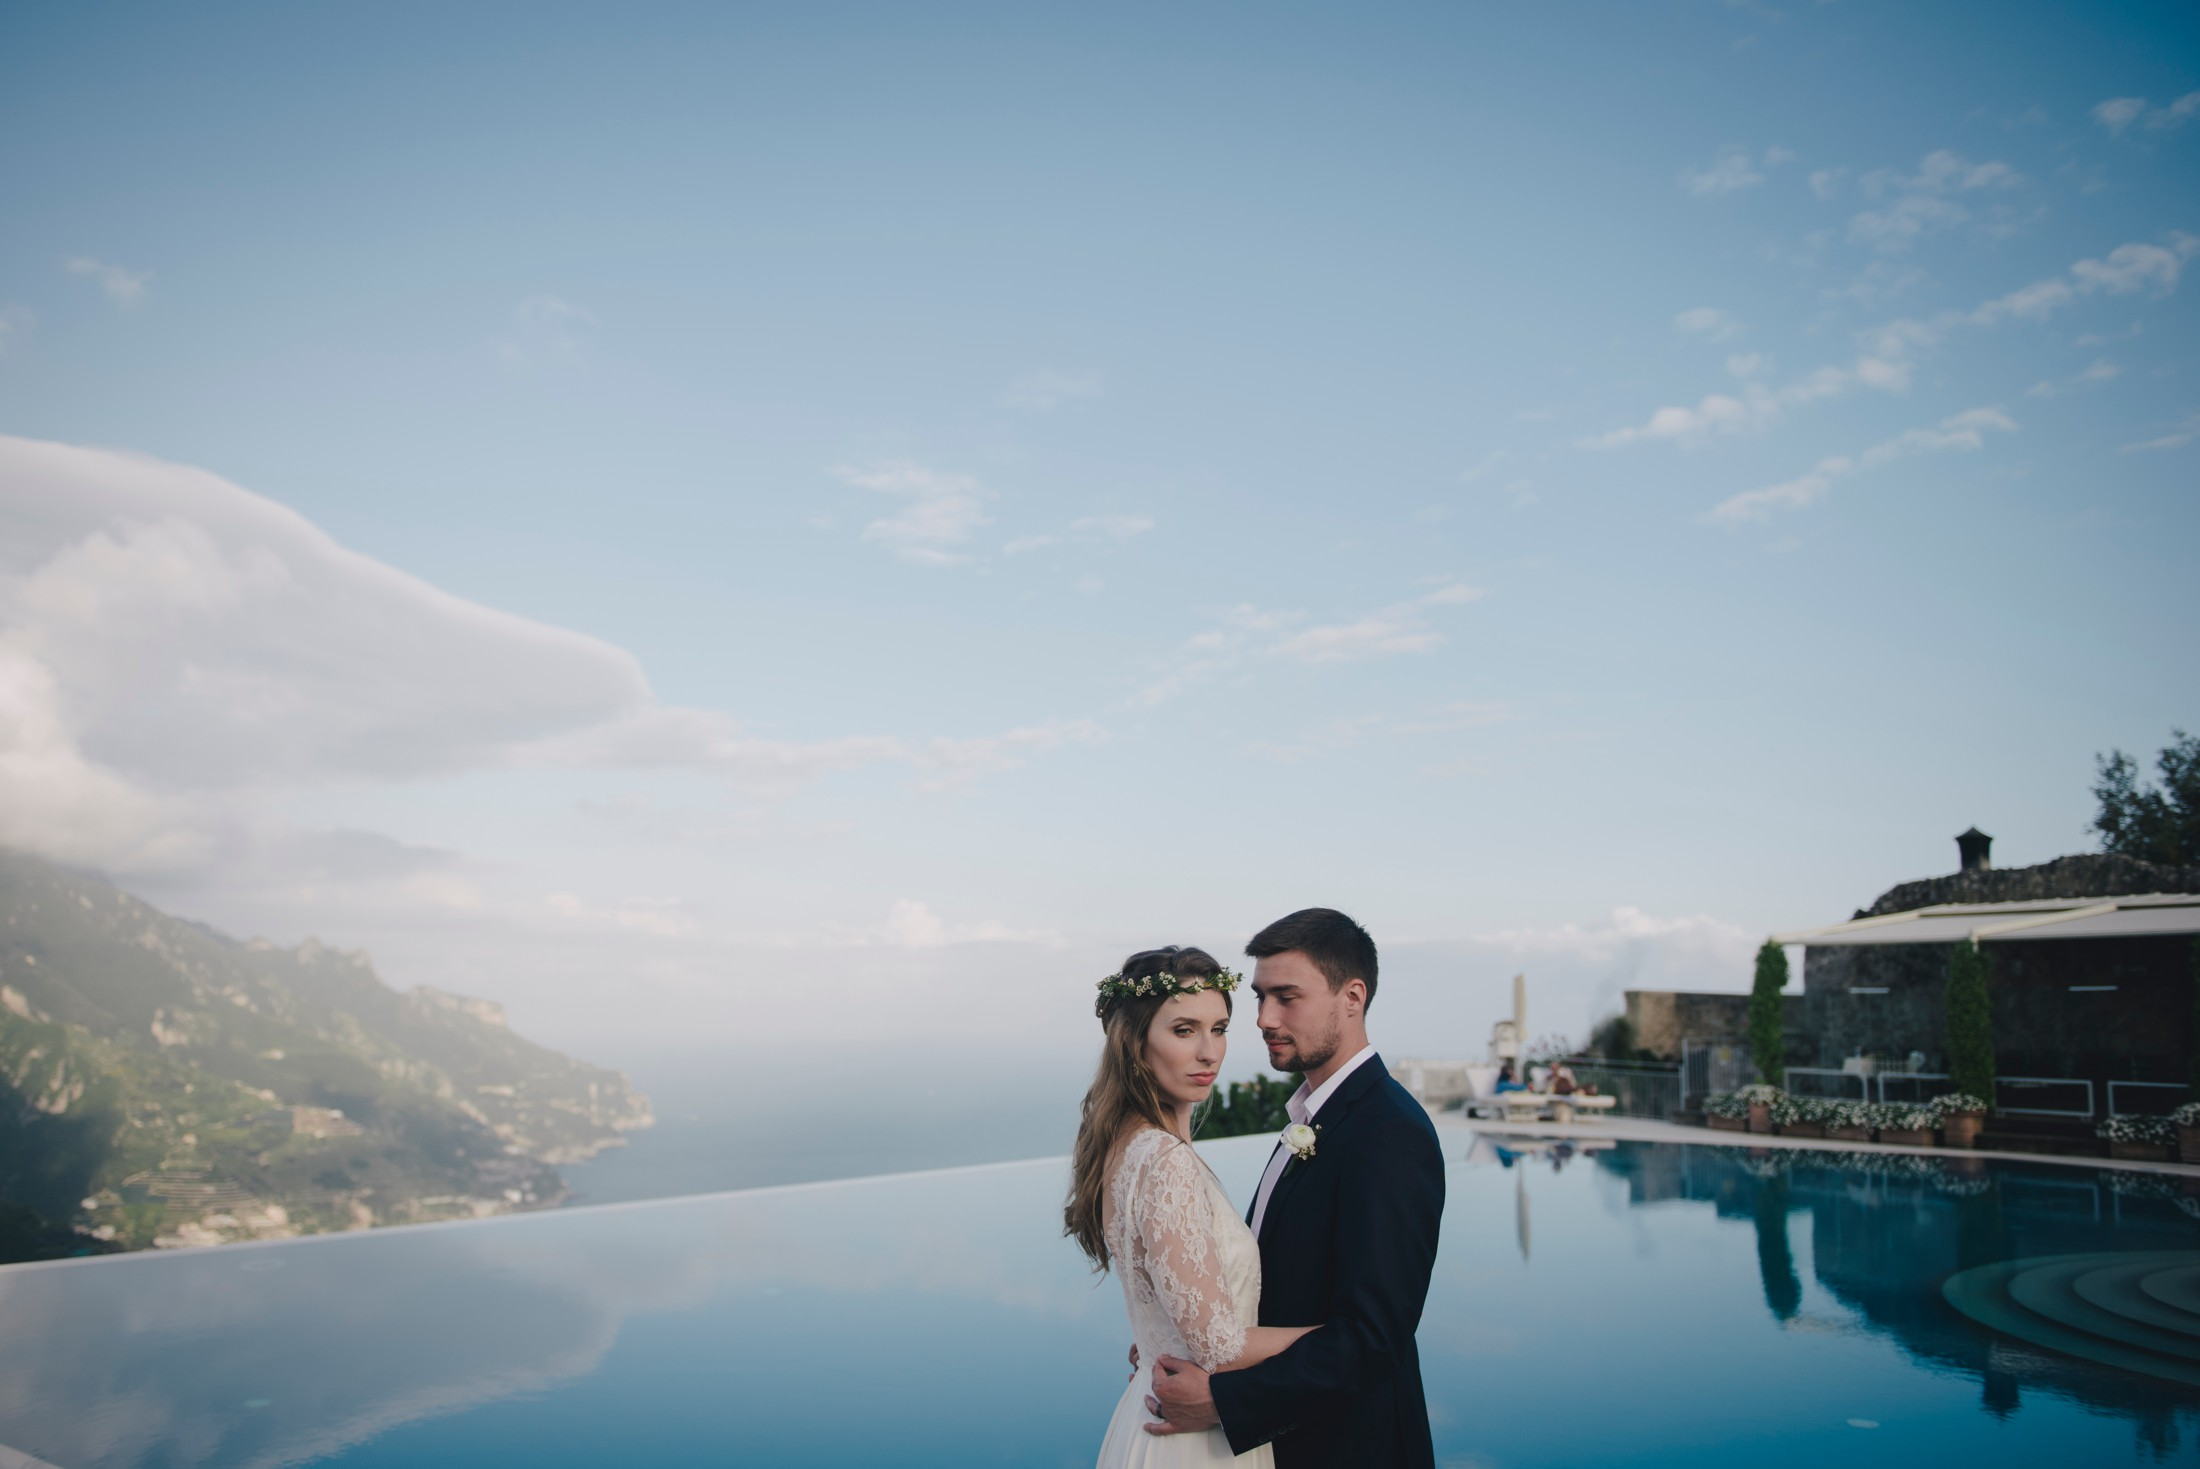 wedding in ravello bride and groom's portrait at the infinity pool of the hotel caruso